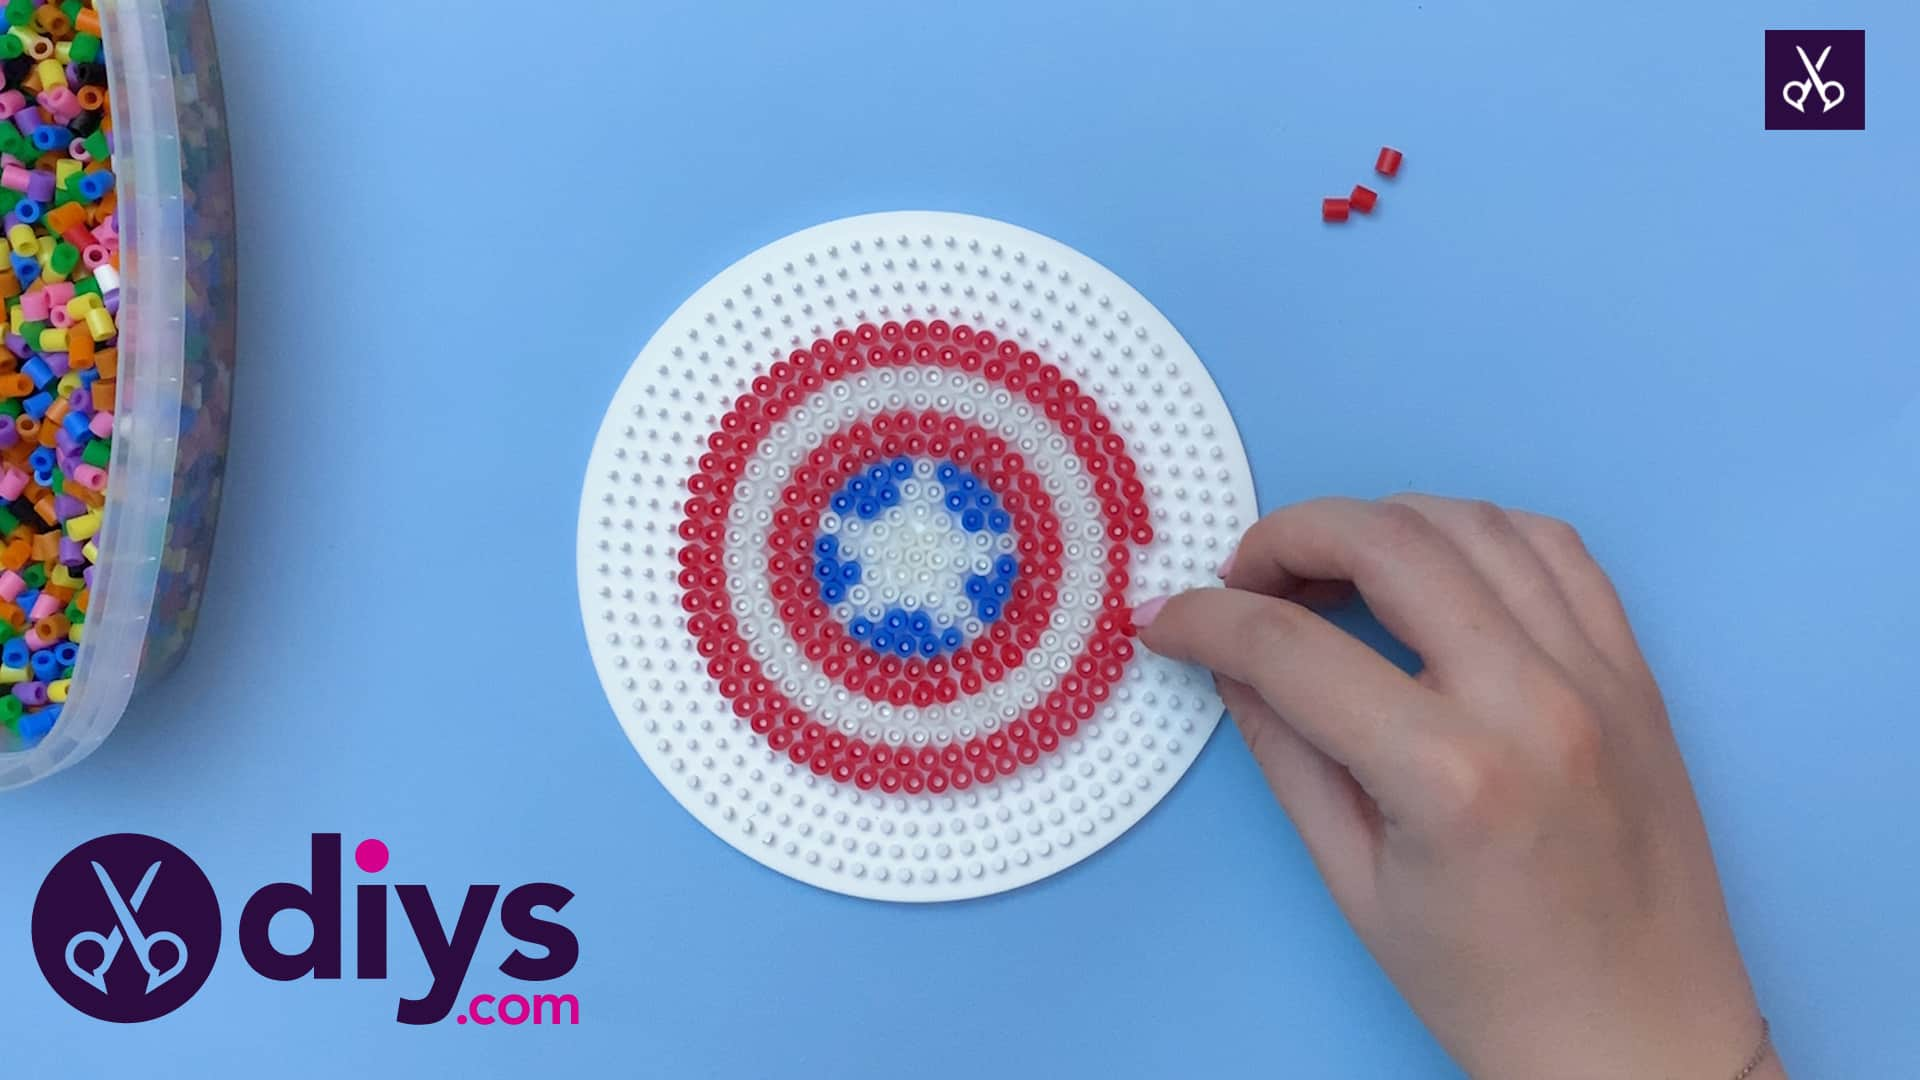 How to make a cool captain america freezer magnet step 6